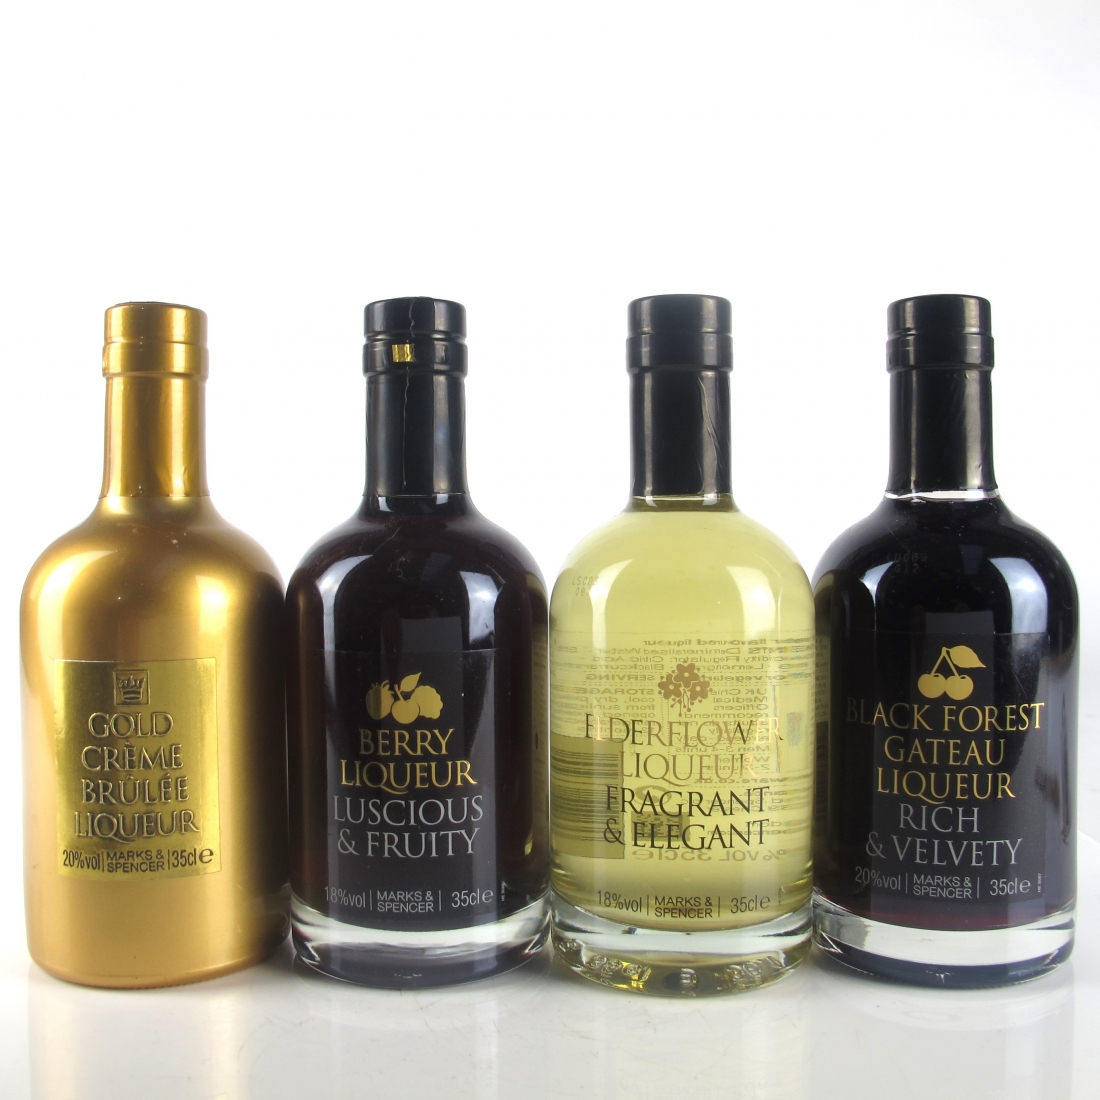 Marks and Spencer Liqueur Selection / 4 x 35cl